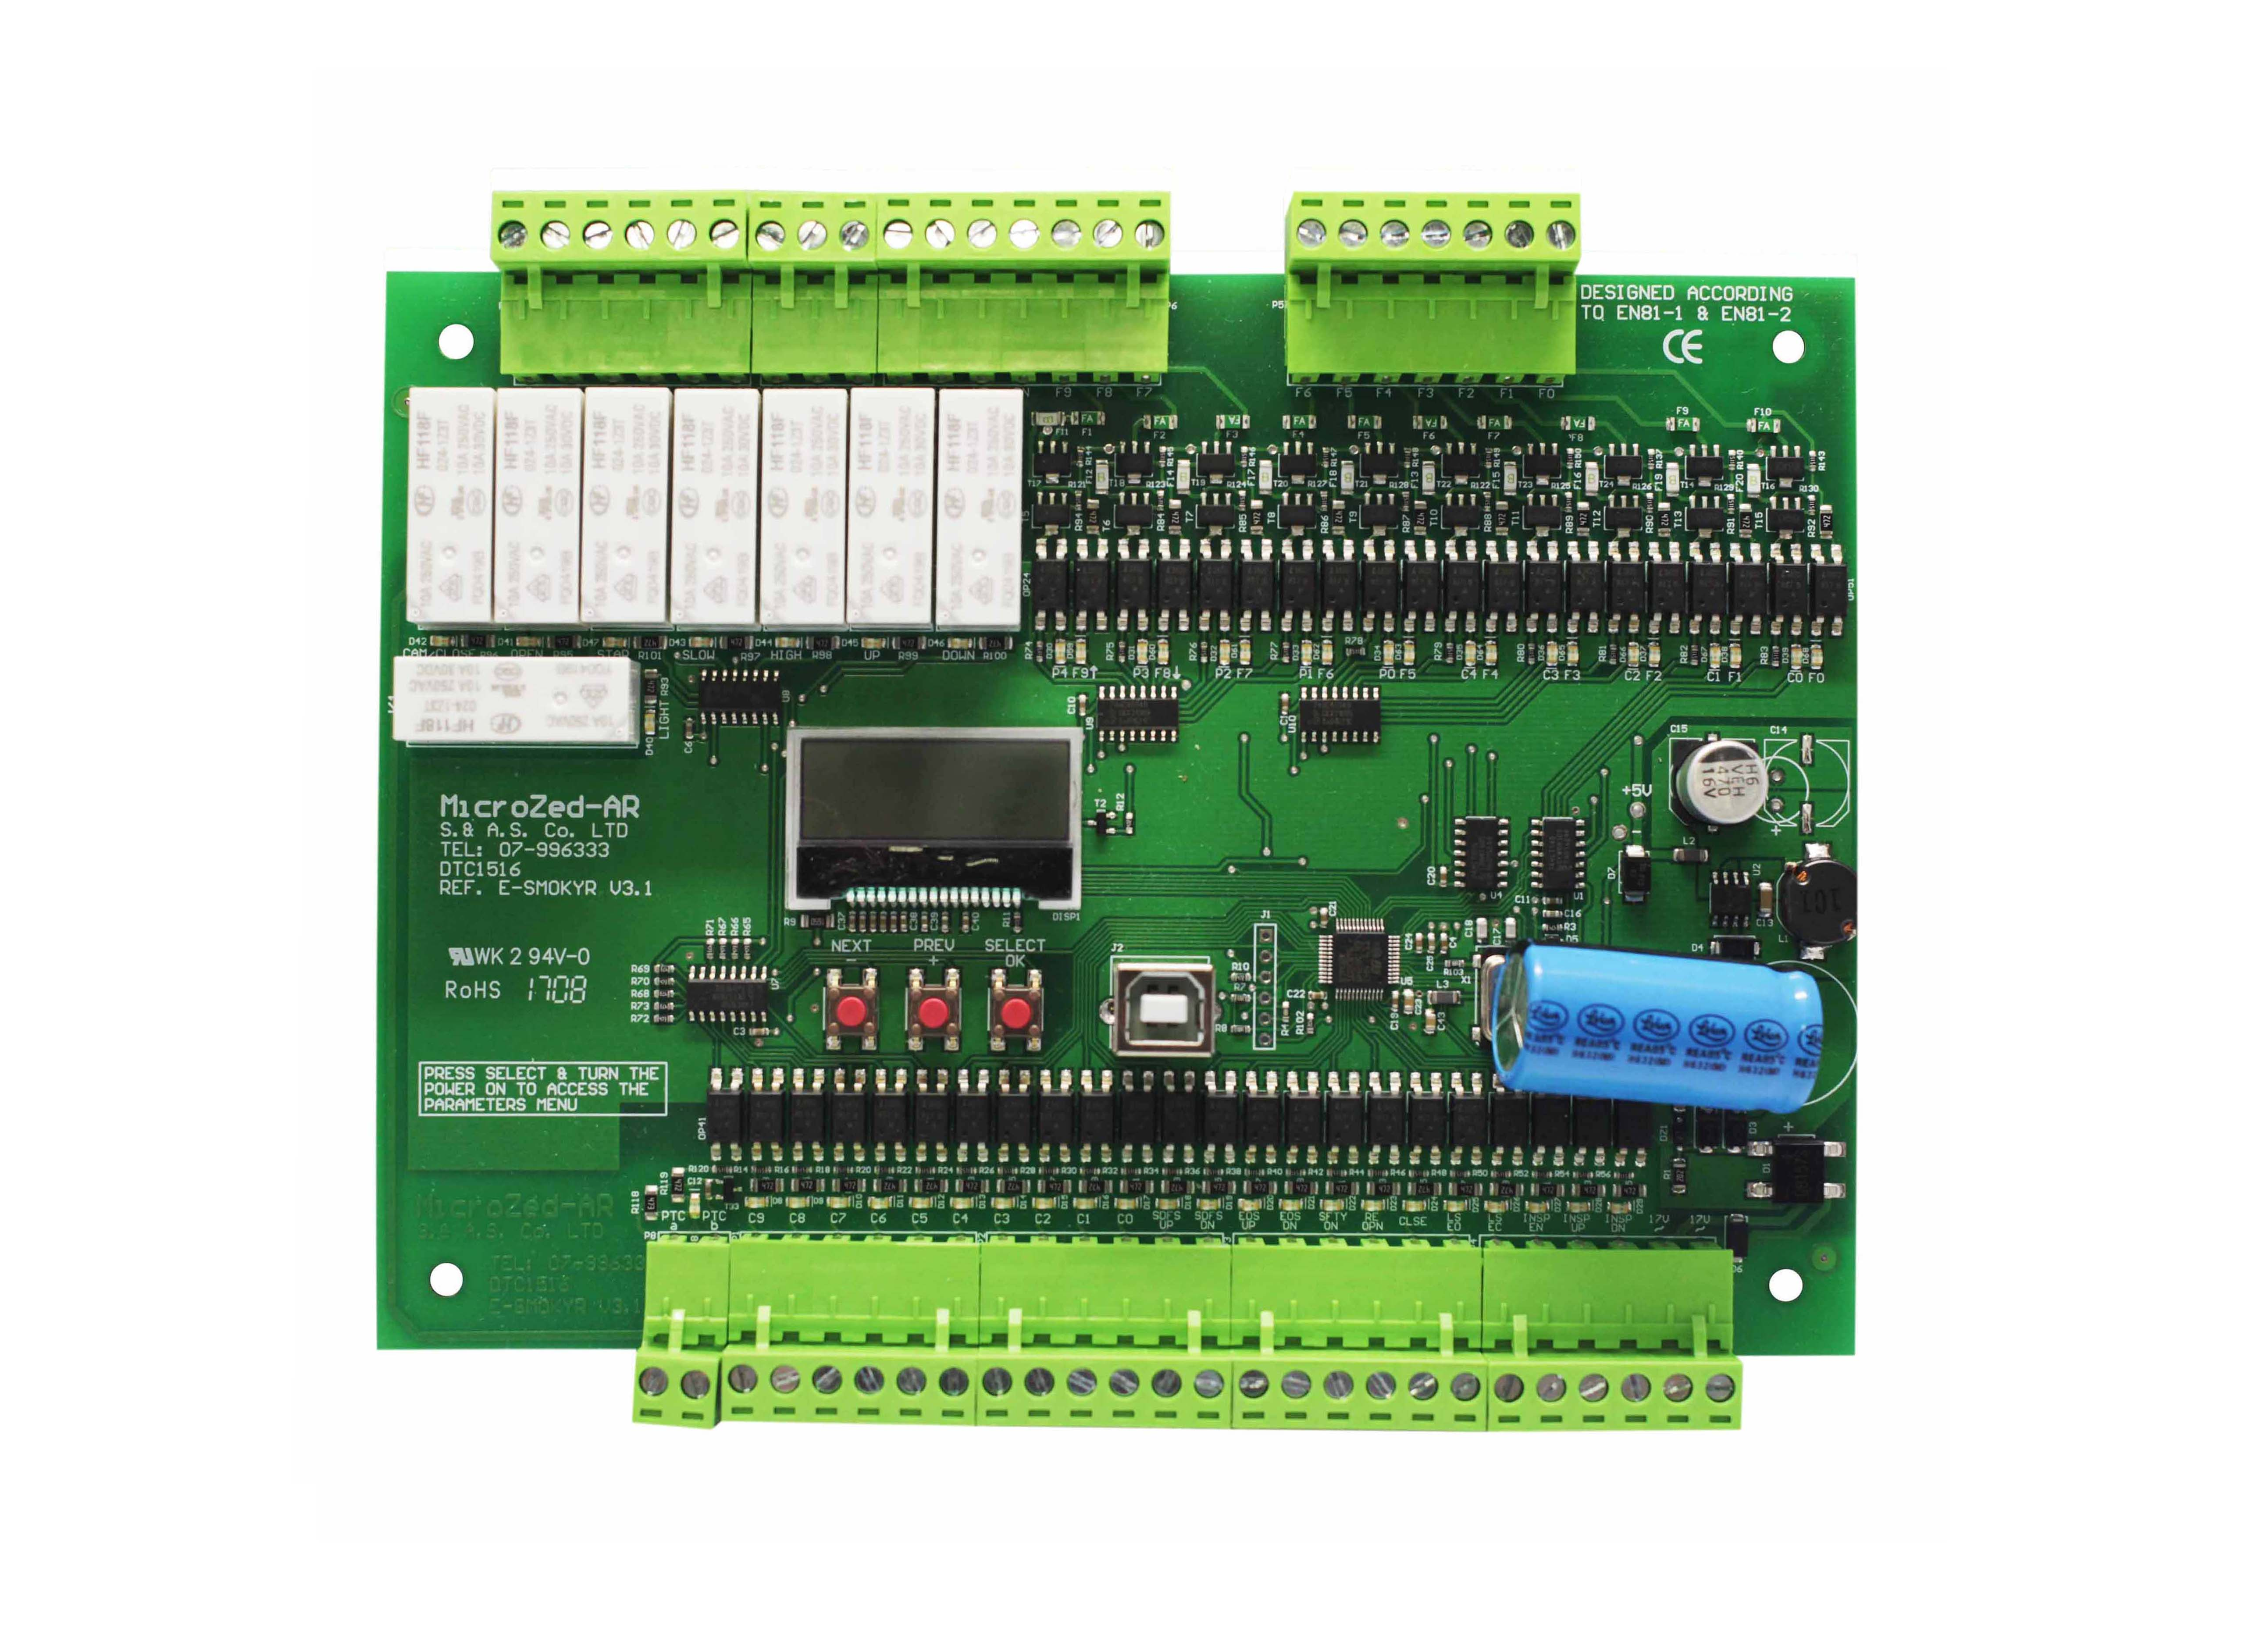 ELEVATOR  CONTROLLER  10  STOPS  AUTOMATIC  PUSH  BUTTON  WITH  RELAYS  −  MICROZED AR  V3.1